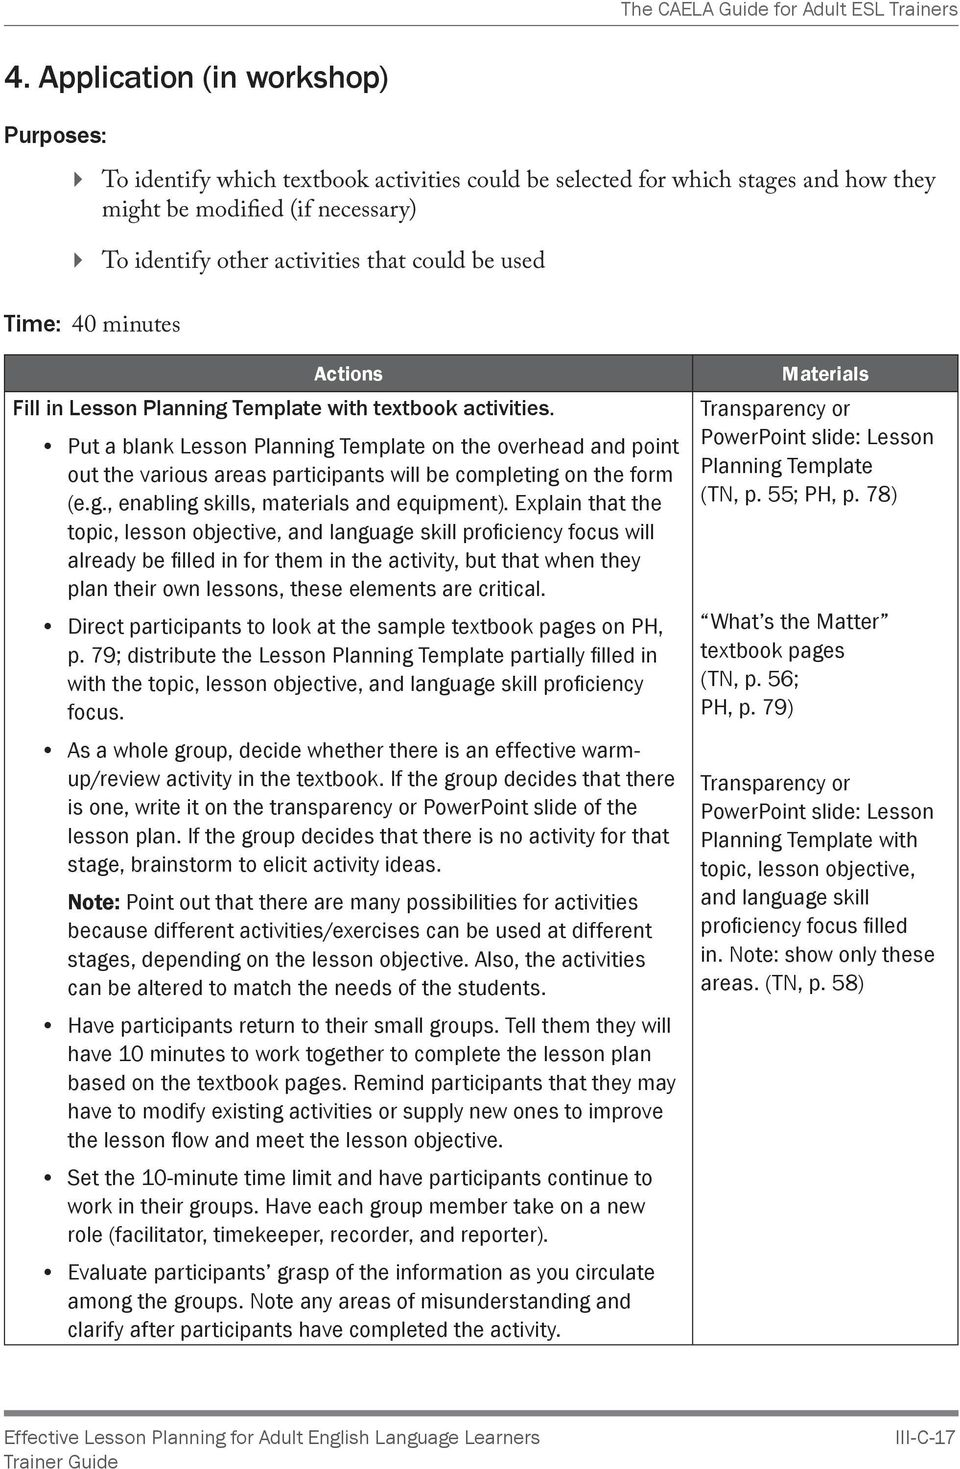 effective lesson planning for adult english language learners pdf rh docplayer net